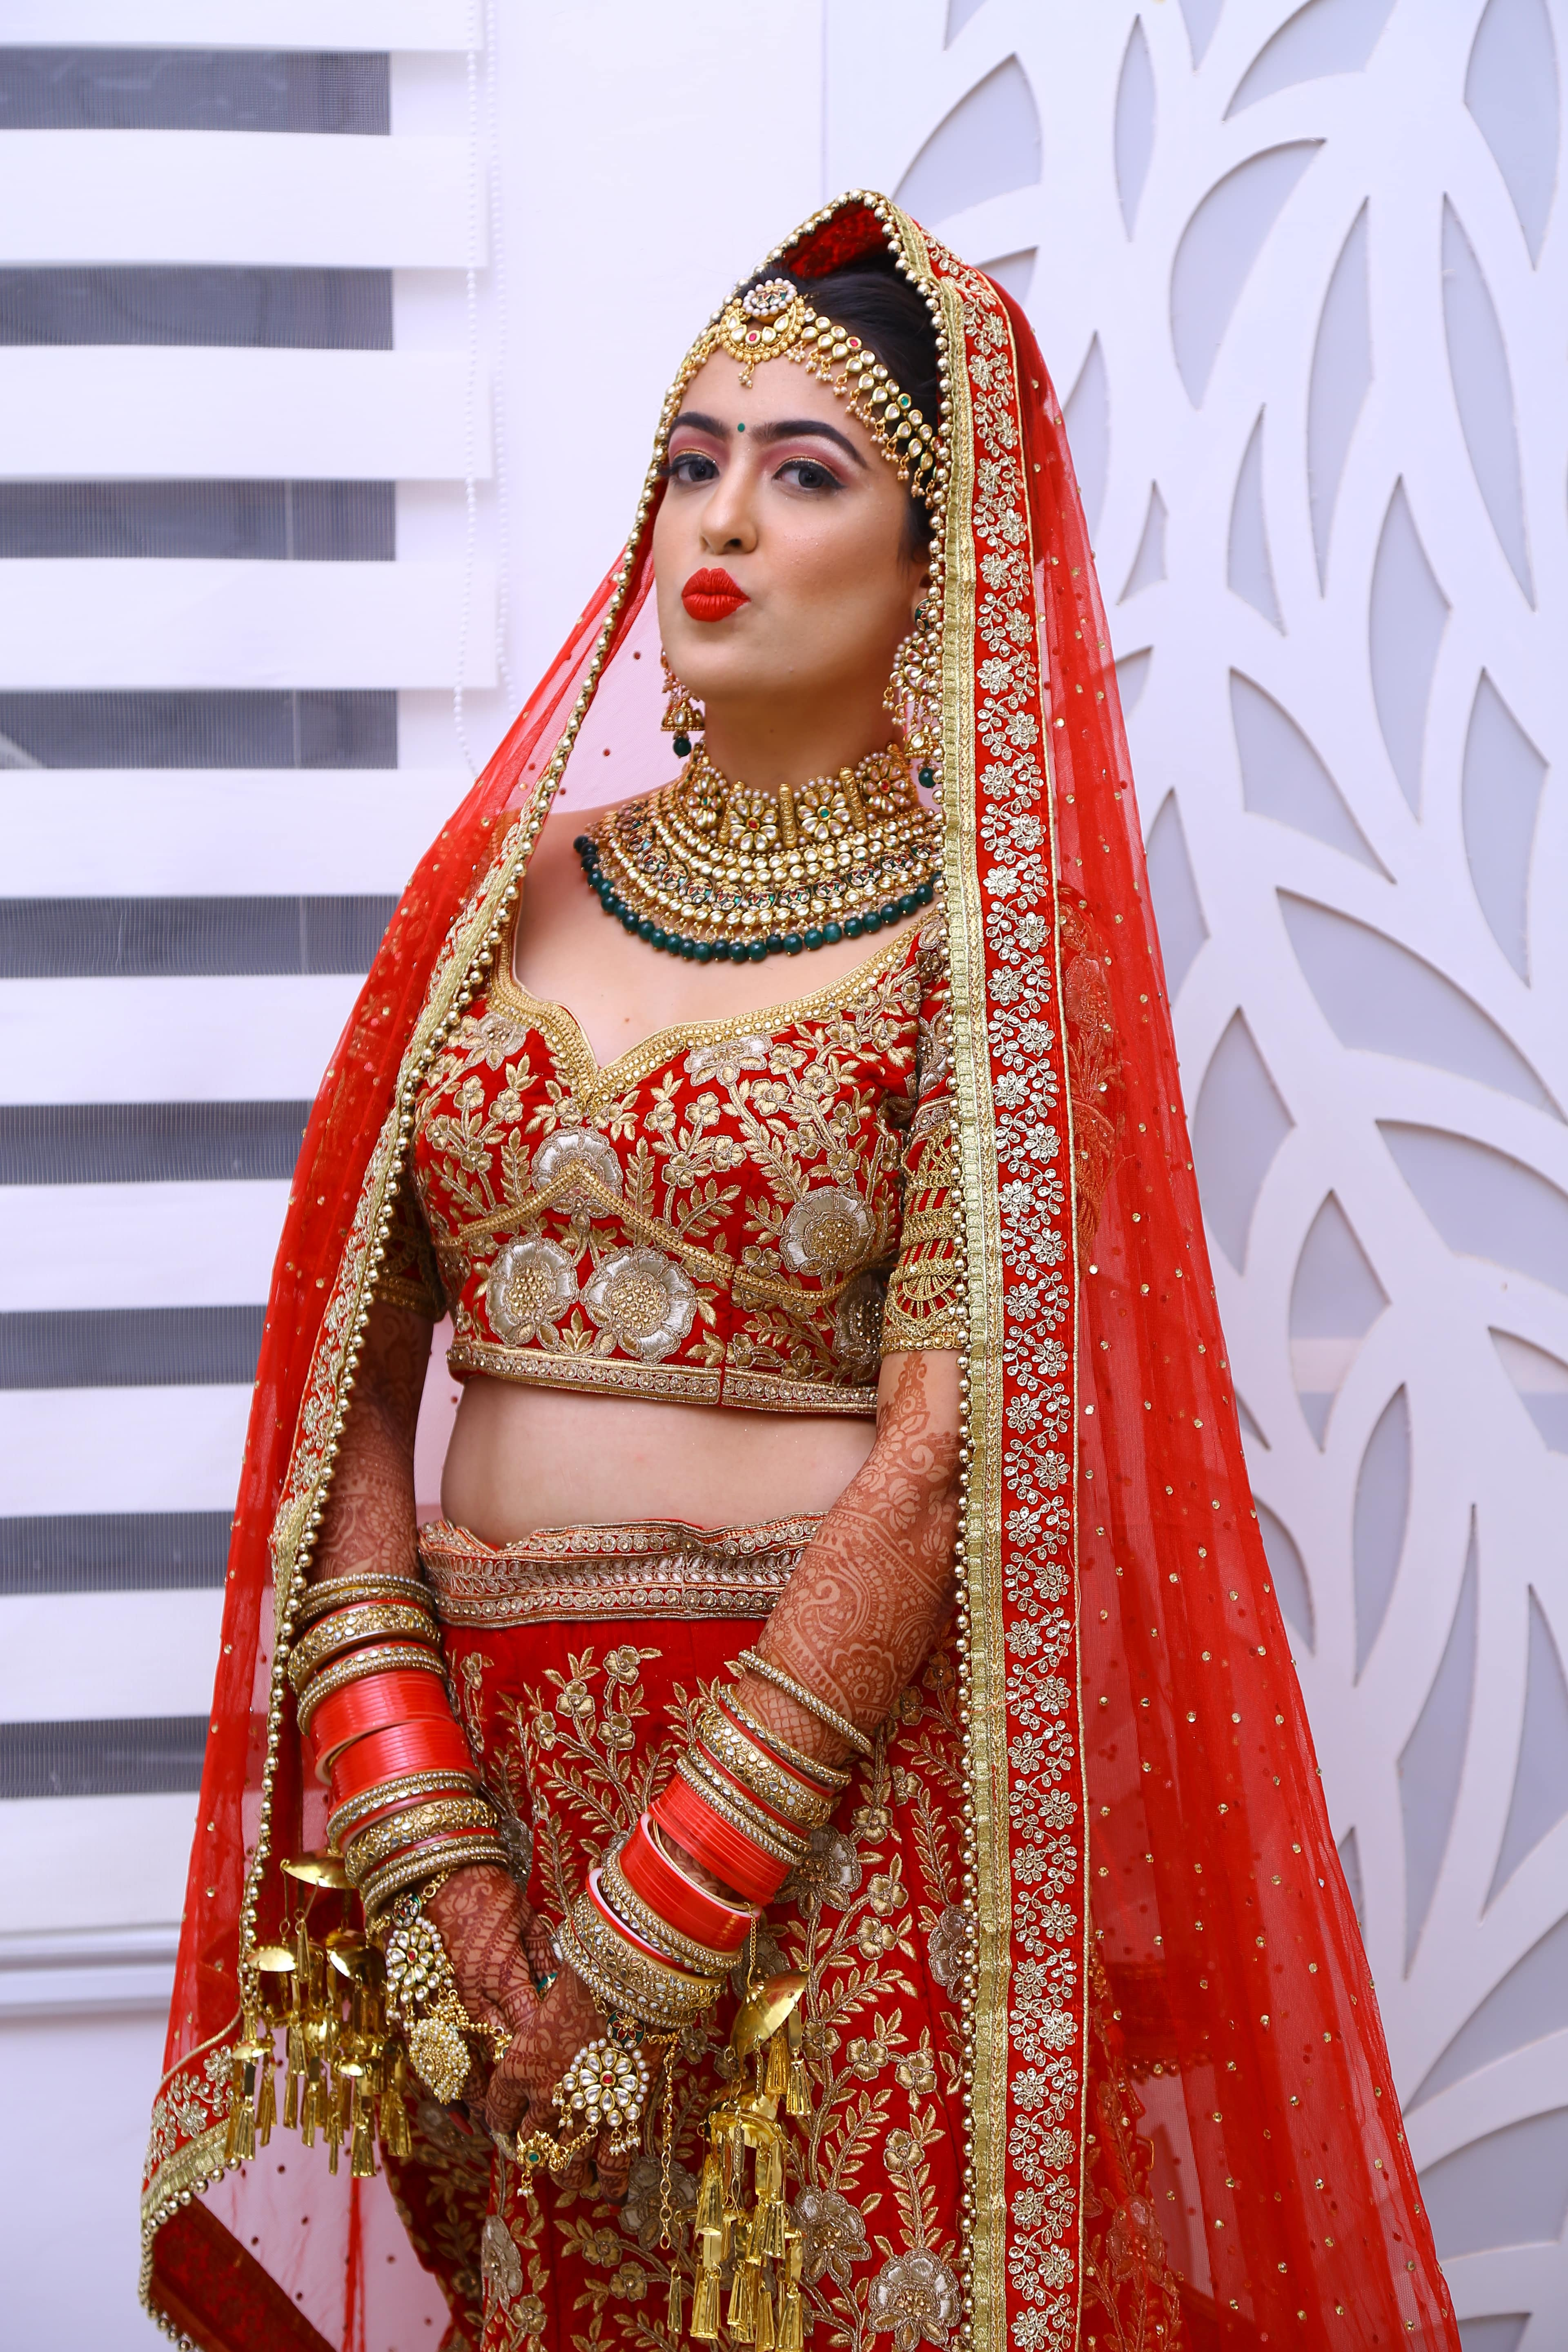 Bridal Makeover Salon in Udaipur